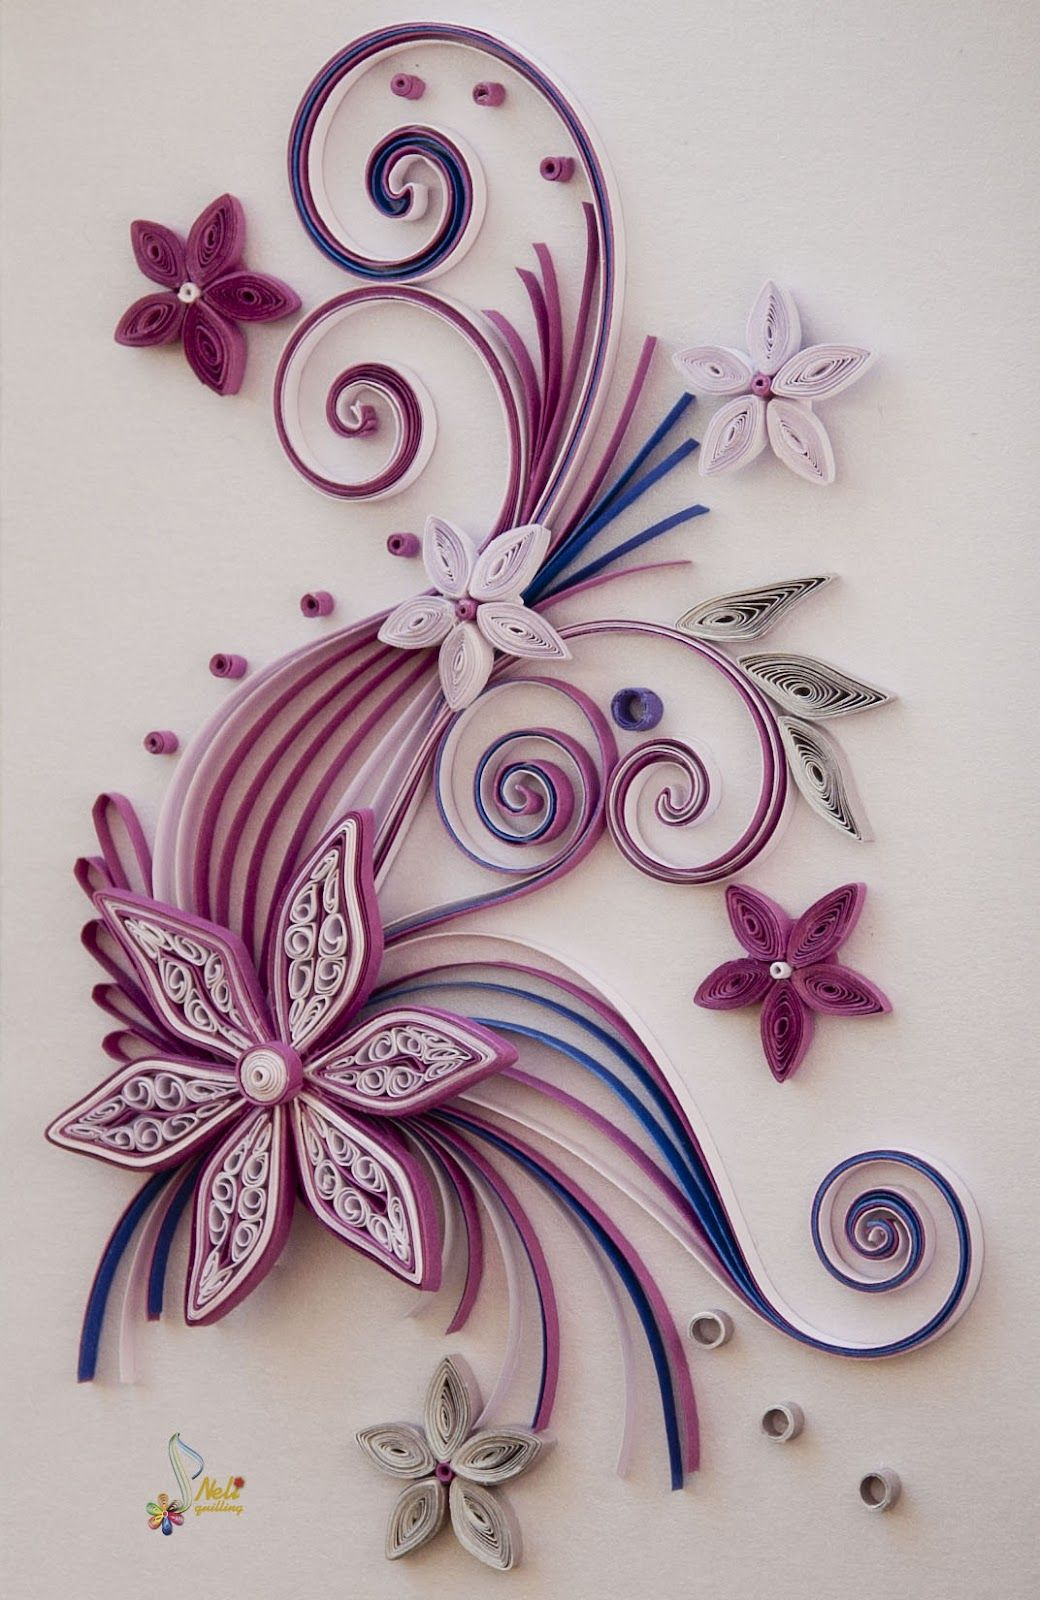 quilling neli quilling cards flowers quilling. Black Bedroom Furniture Sets. Home Design Ideas